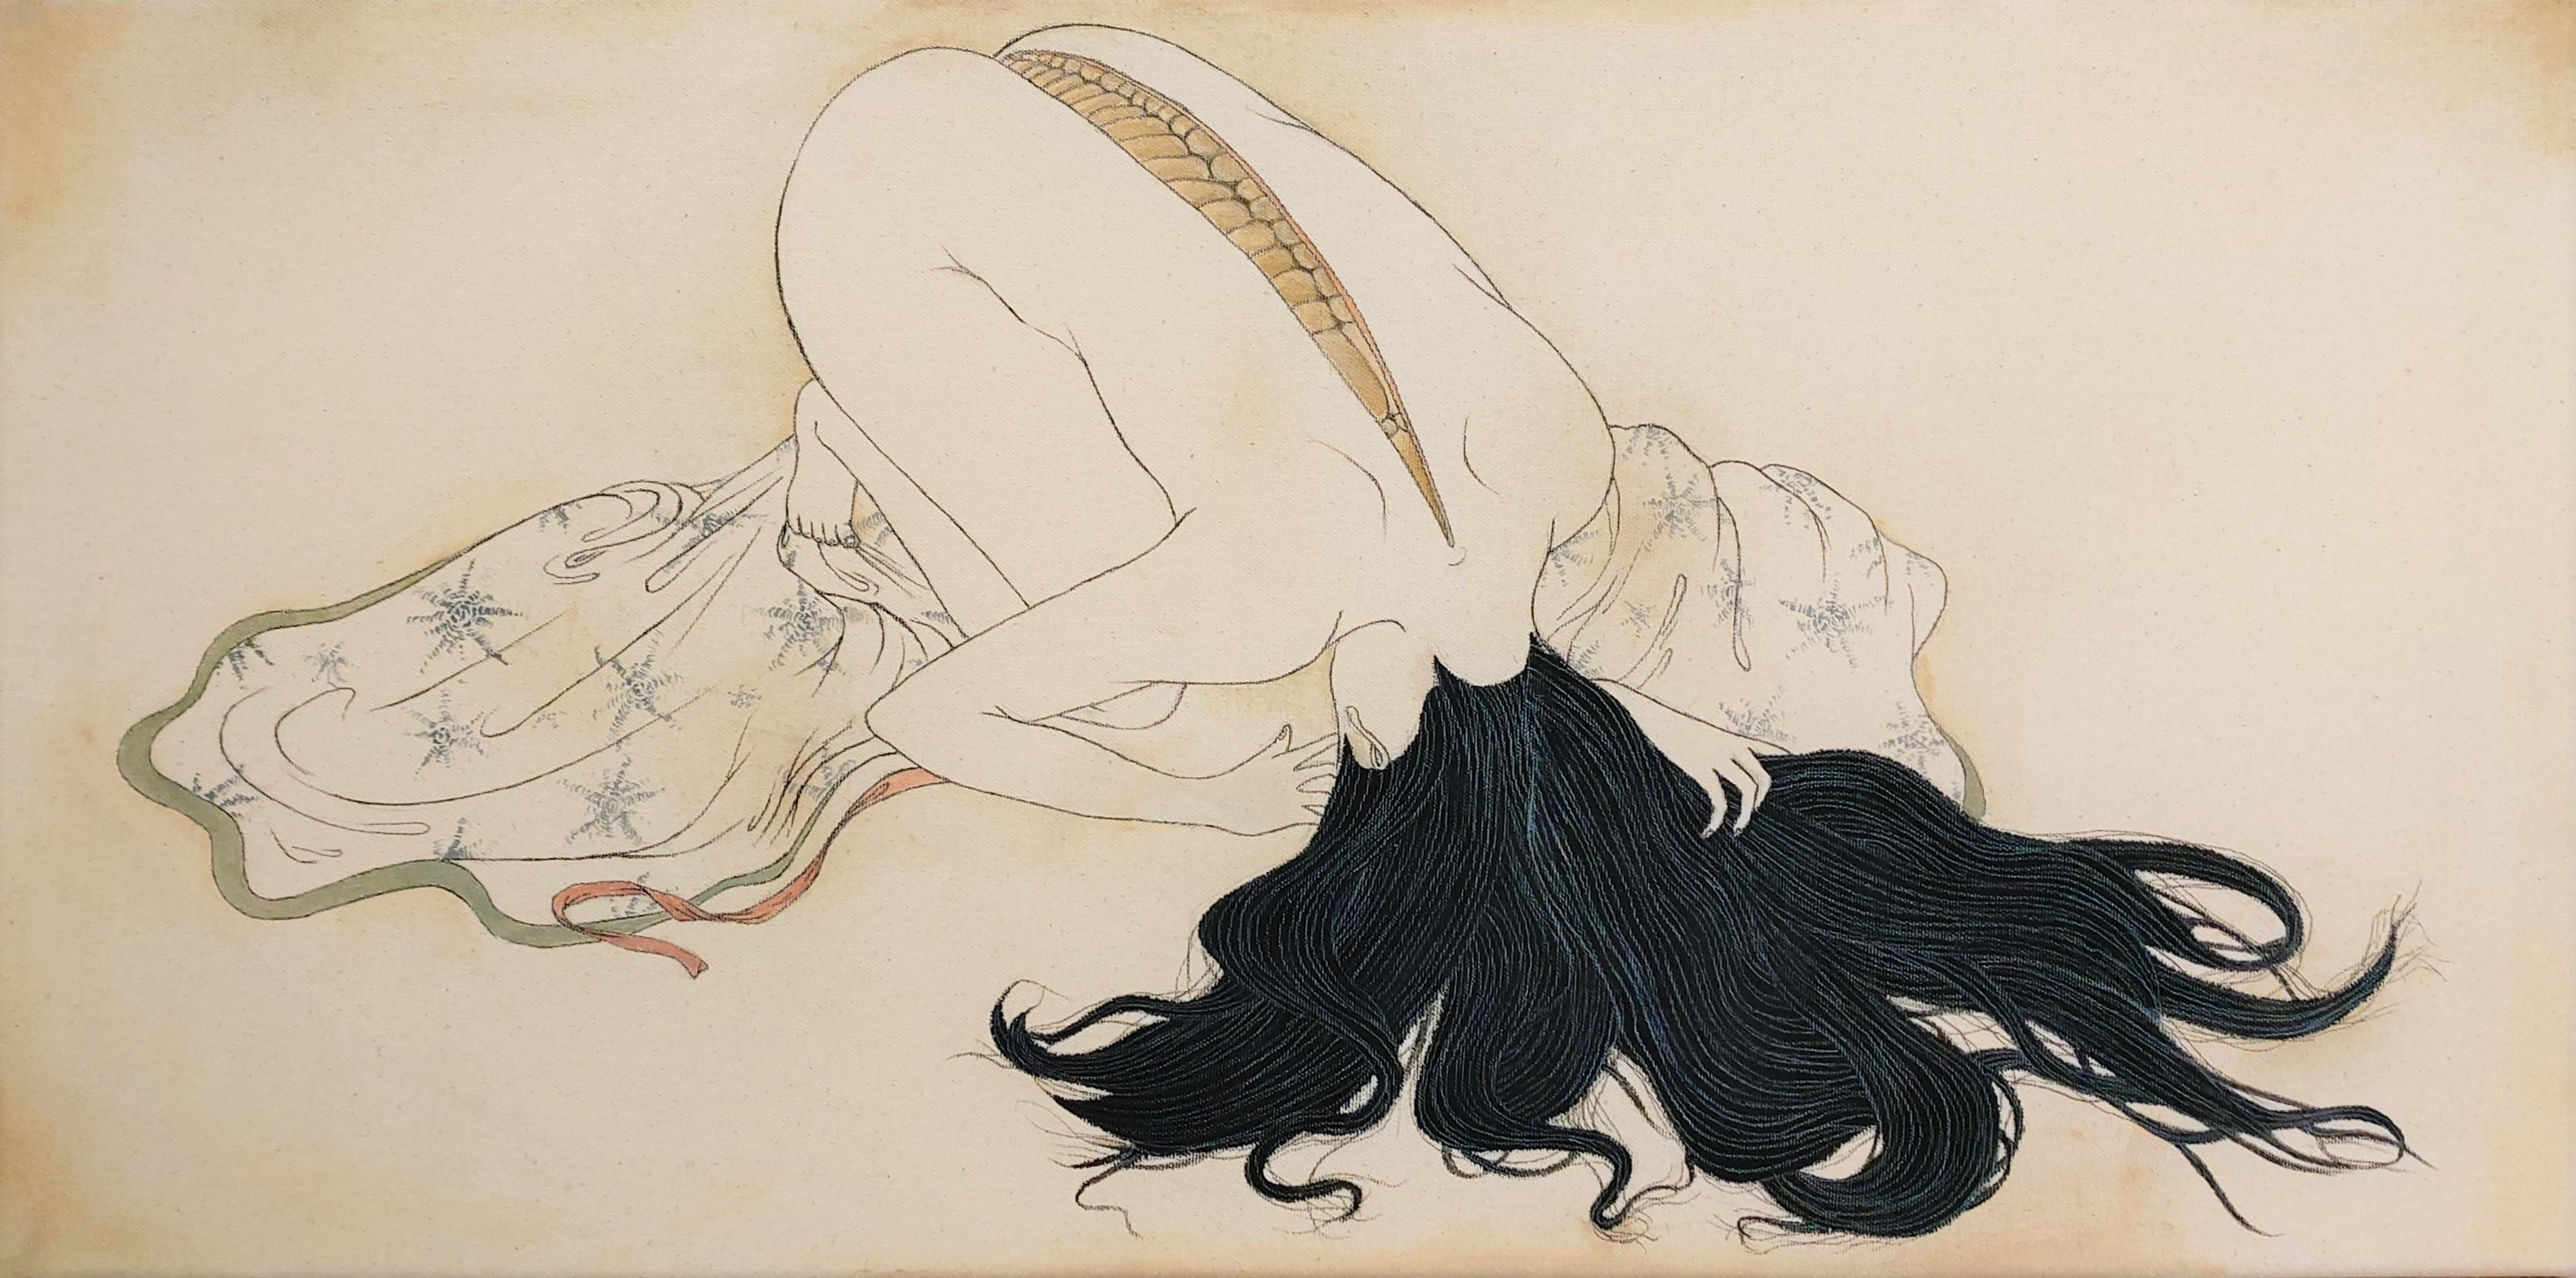 """""""Regarding the notion of regret as a physical manifestation with an impulse to emerge within a person, I presented it as a protective shell, much like the chrysalis of an insect. Inspired by shunga masters such as Kitagawa Utamaro, the cloth pooled on the floor, as well as the nudity point to a displaced sense of eroticism, contrasting the grotesque nature of the piece. While a chrysalis can symbolize protection and concealment of said """"regret"""", it also signifies an inevitable emergence."""""""